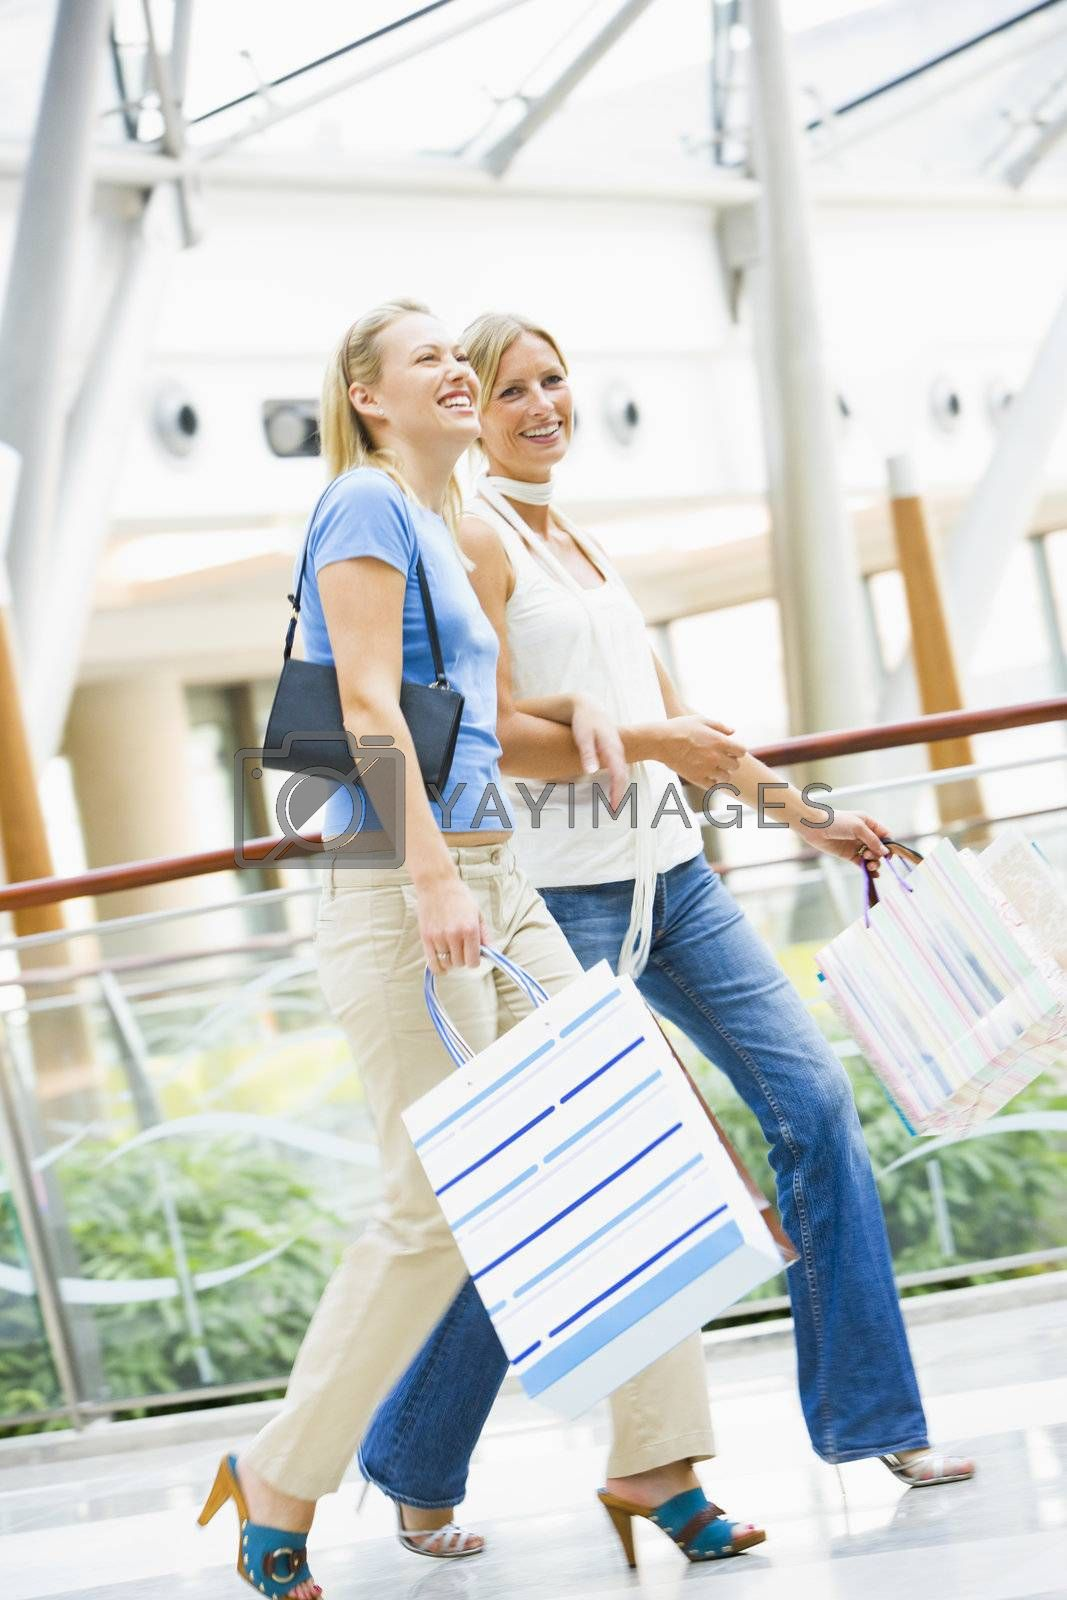 Friends shopping in mall carrying bags